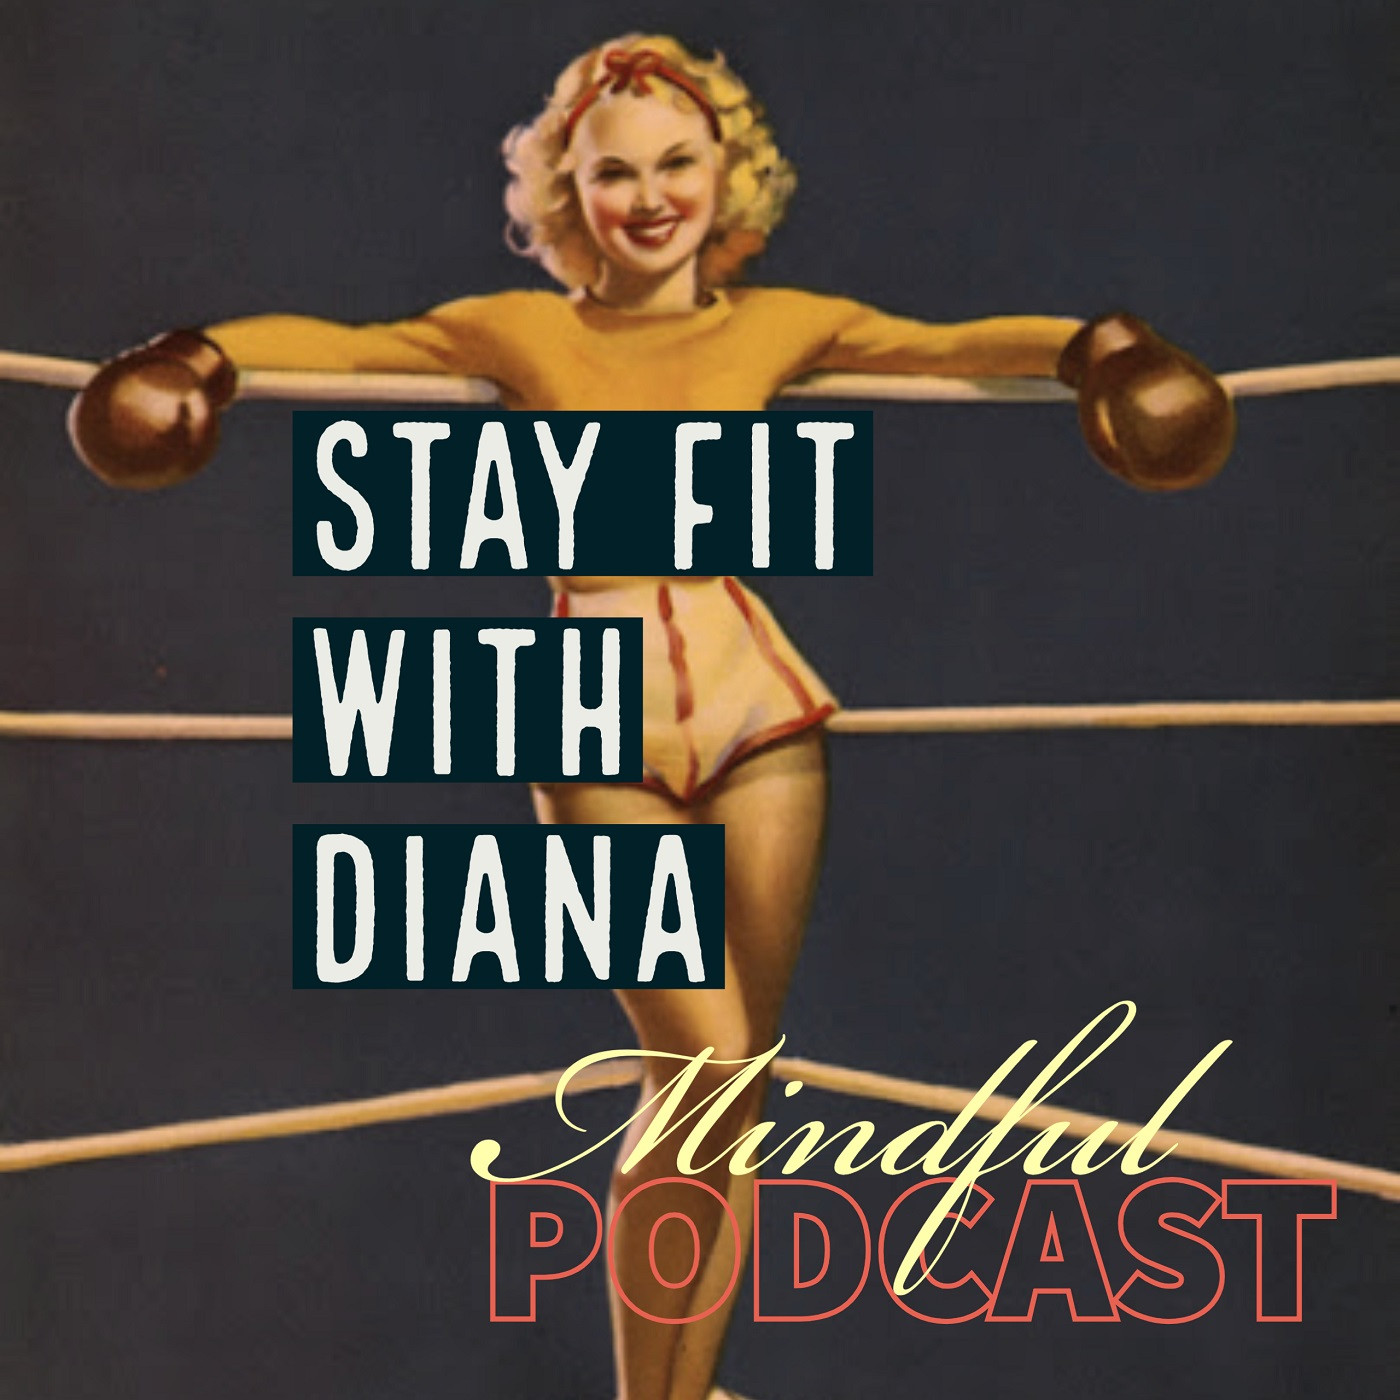 Stay Fit with Diana